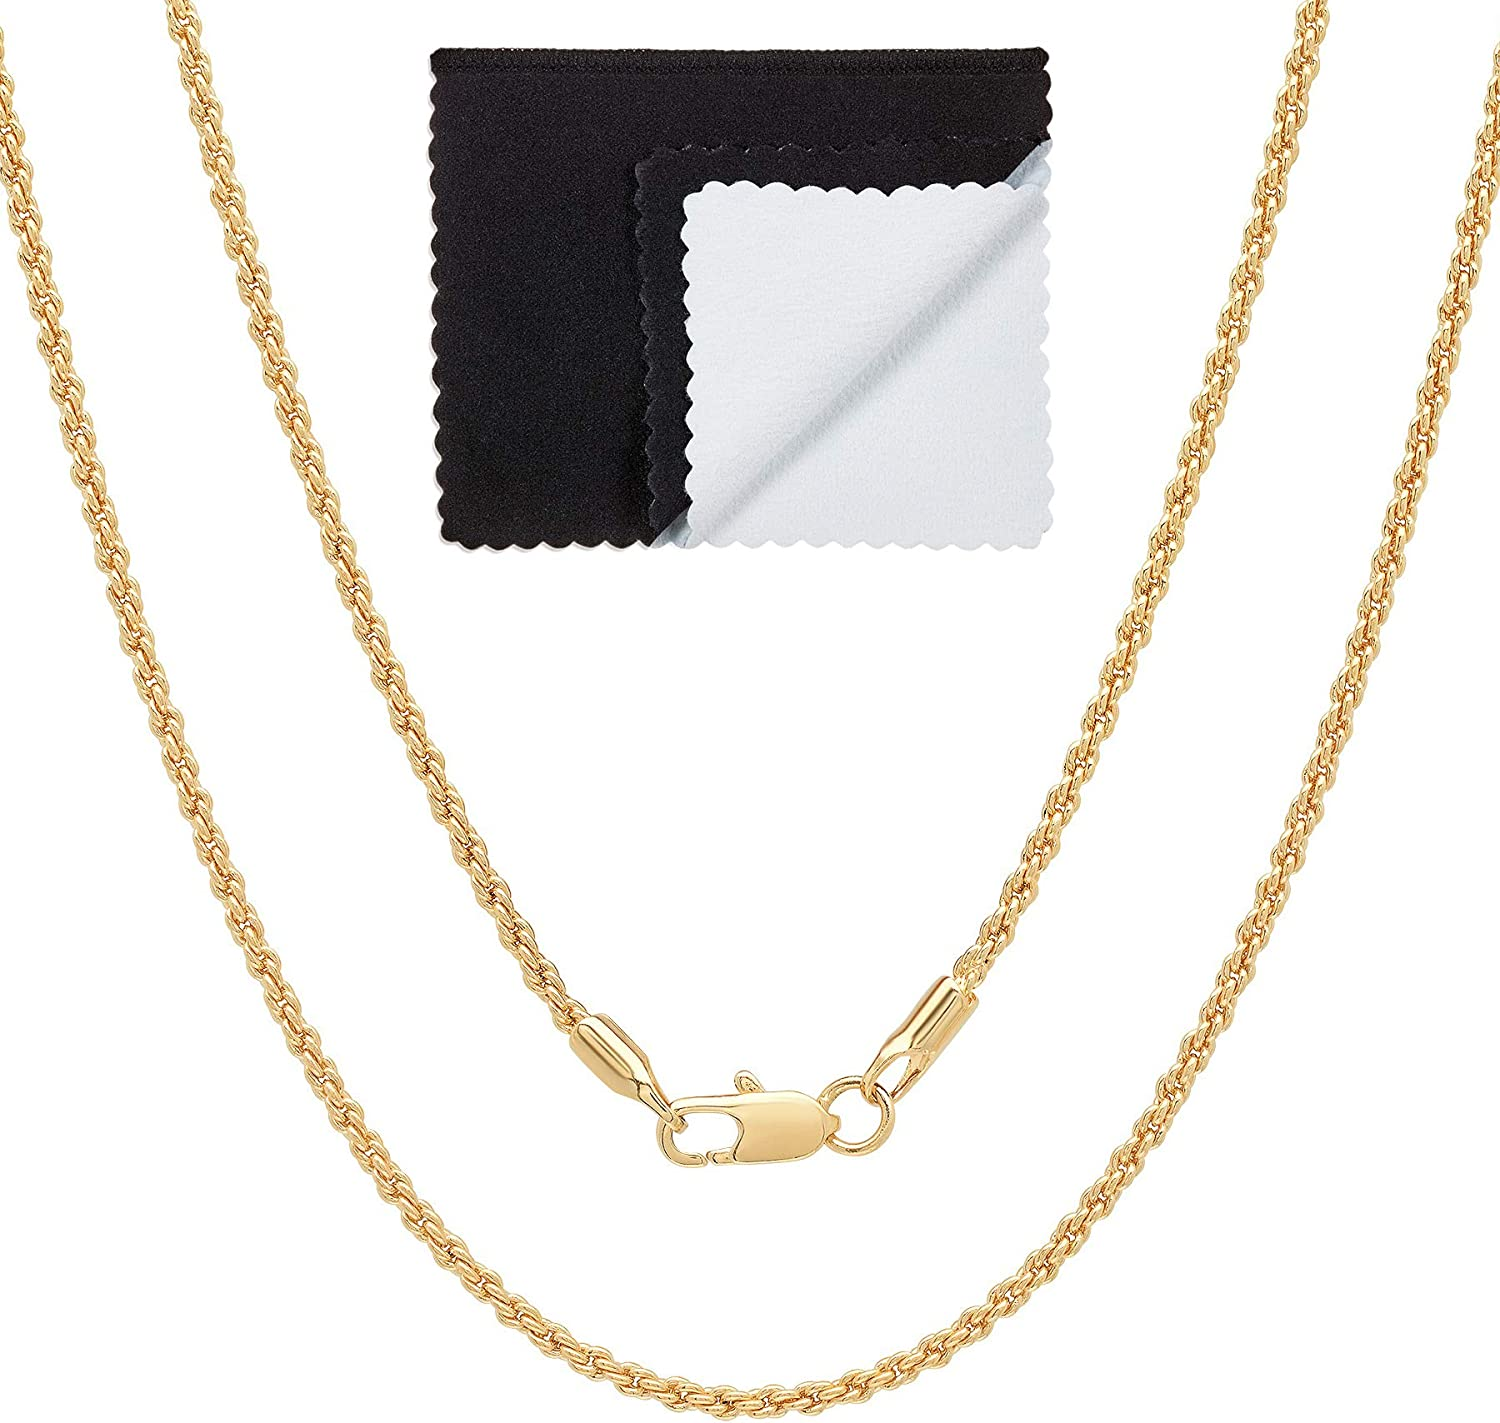 The Bling Factory 2mm High-Polished 0.25 mils (6 microns) 14k Yellow Gold Plated Round Rope Chain Necklace, 16'-30